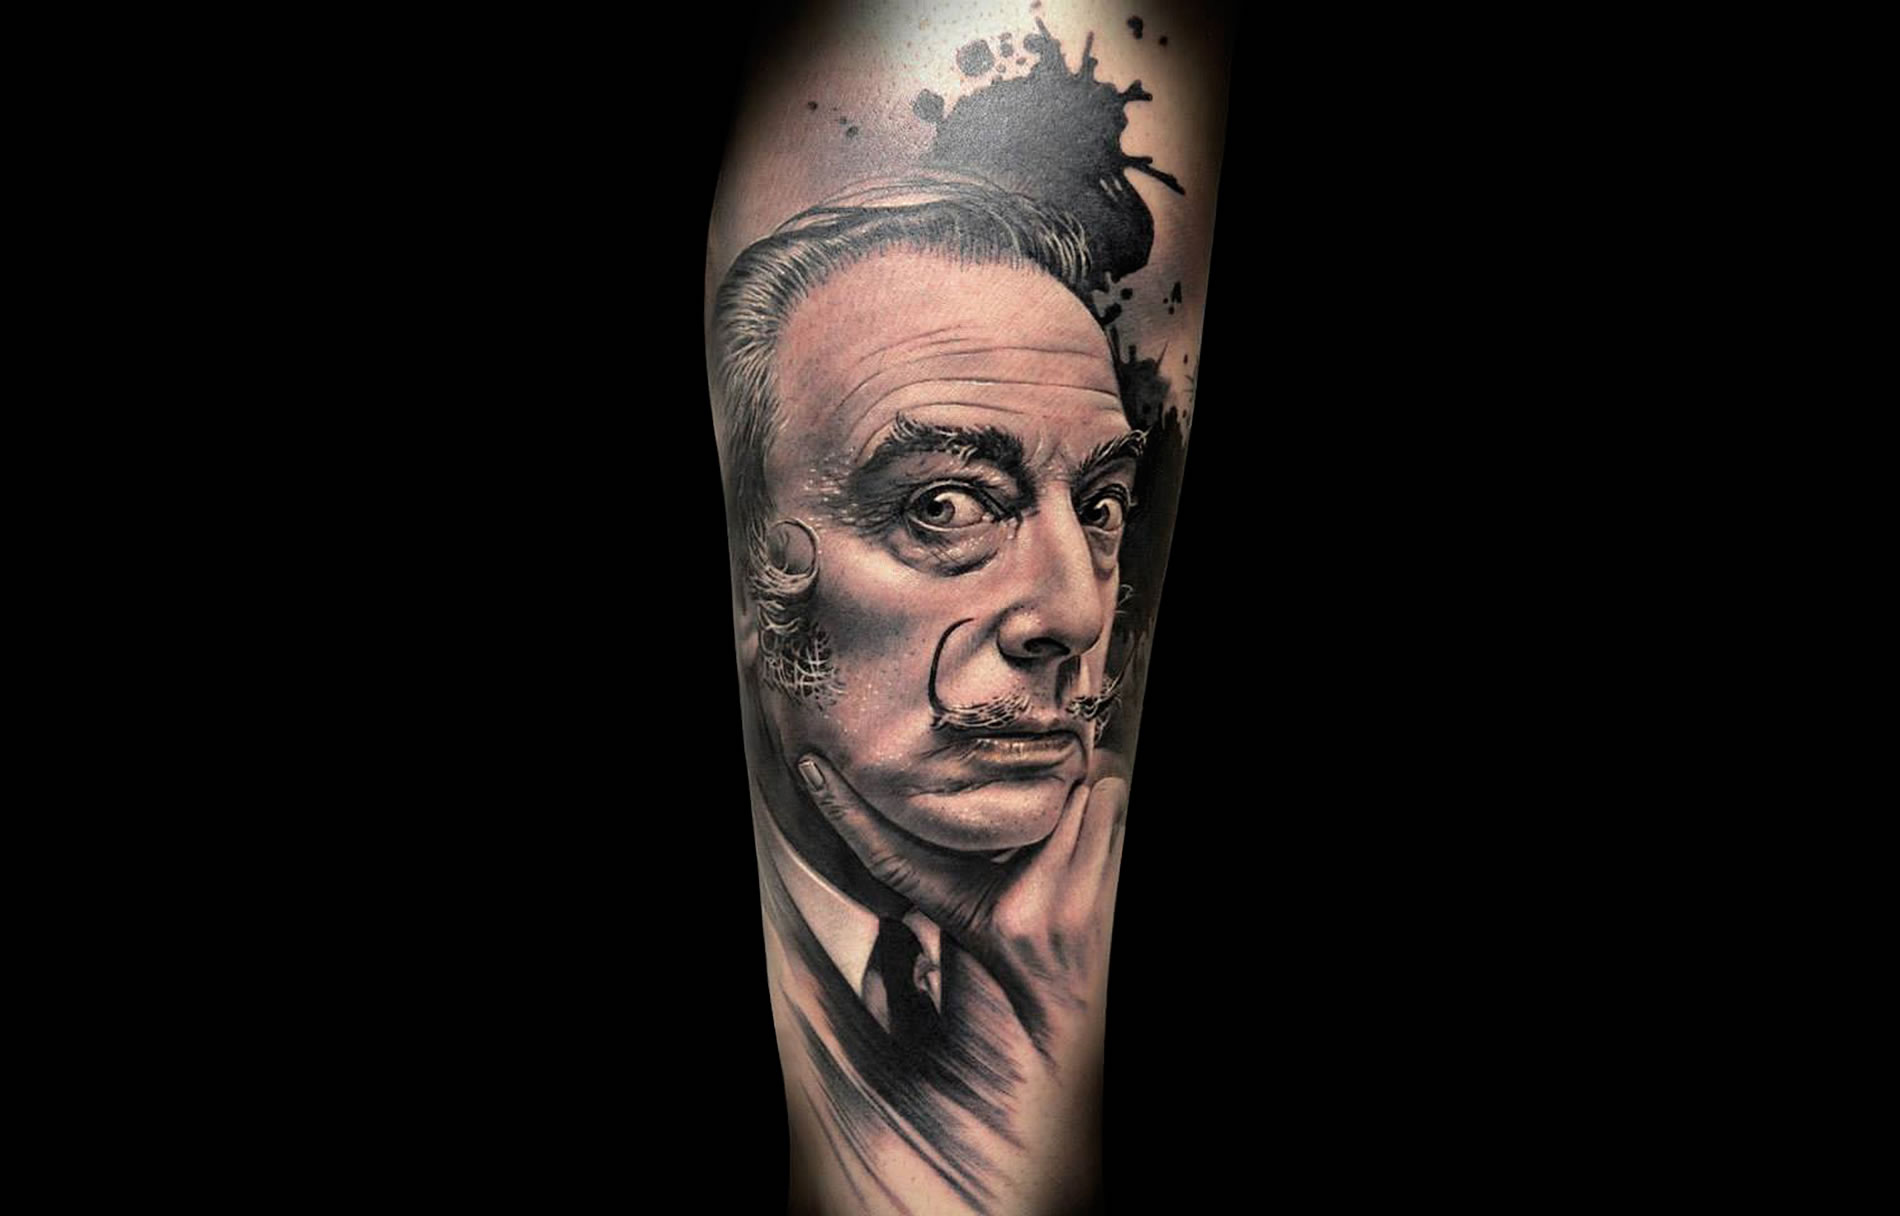 Tattoos of the Art Genius Dali, the Grim Reaper, and More